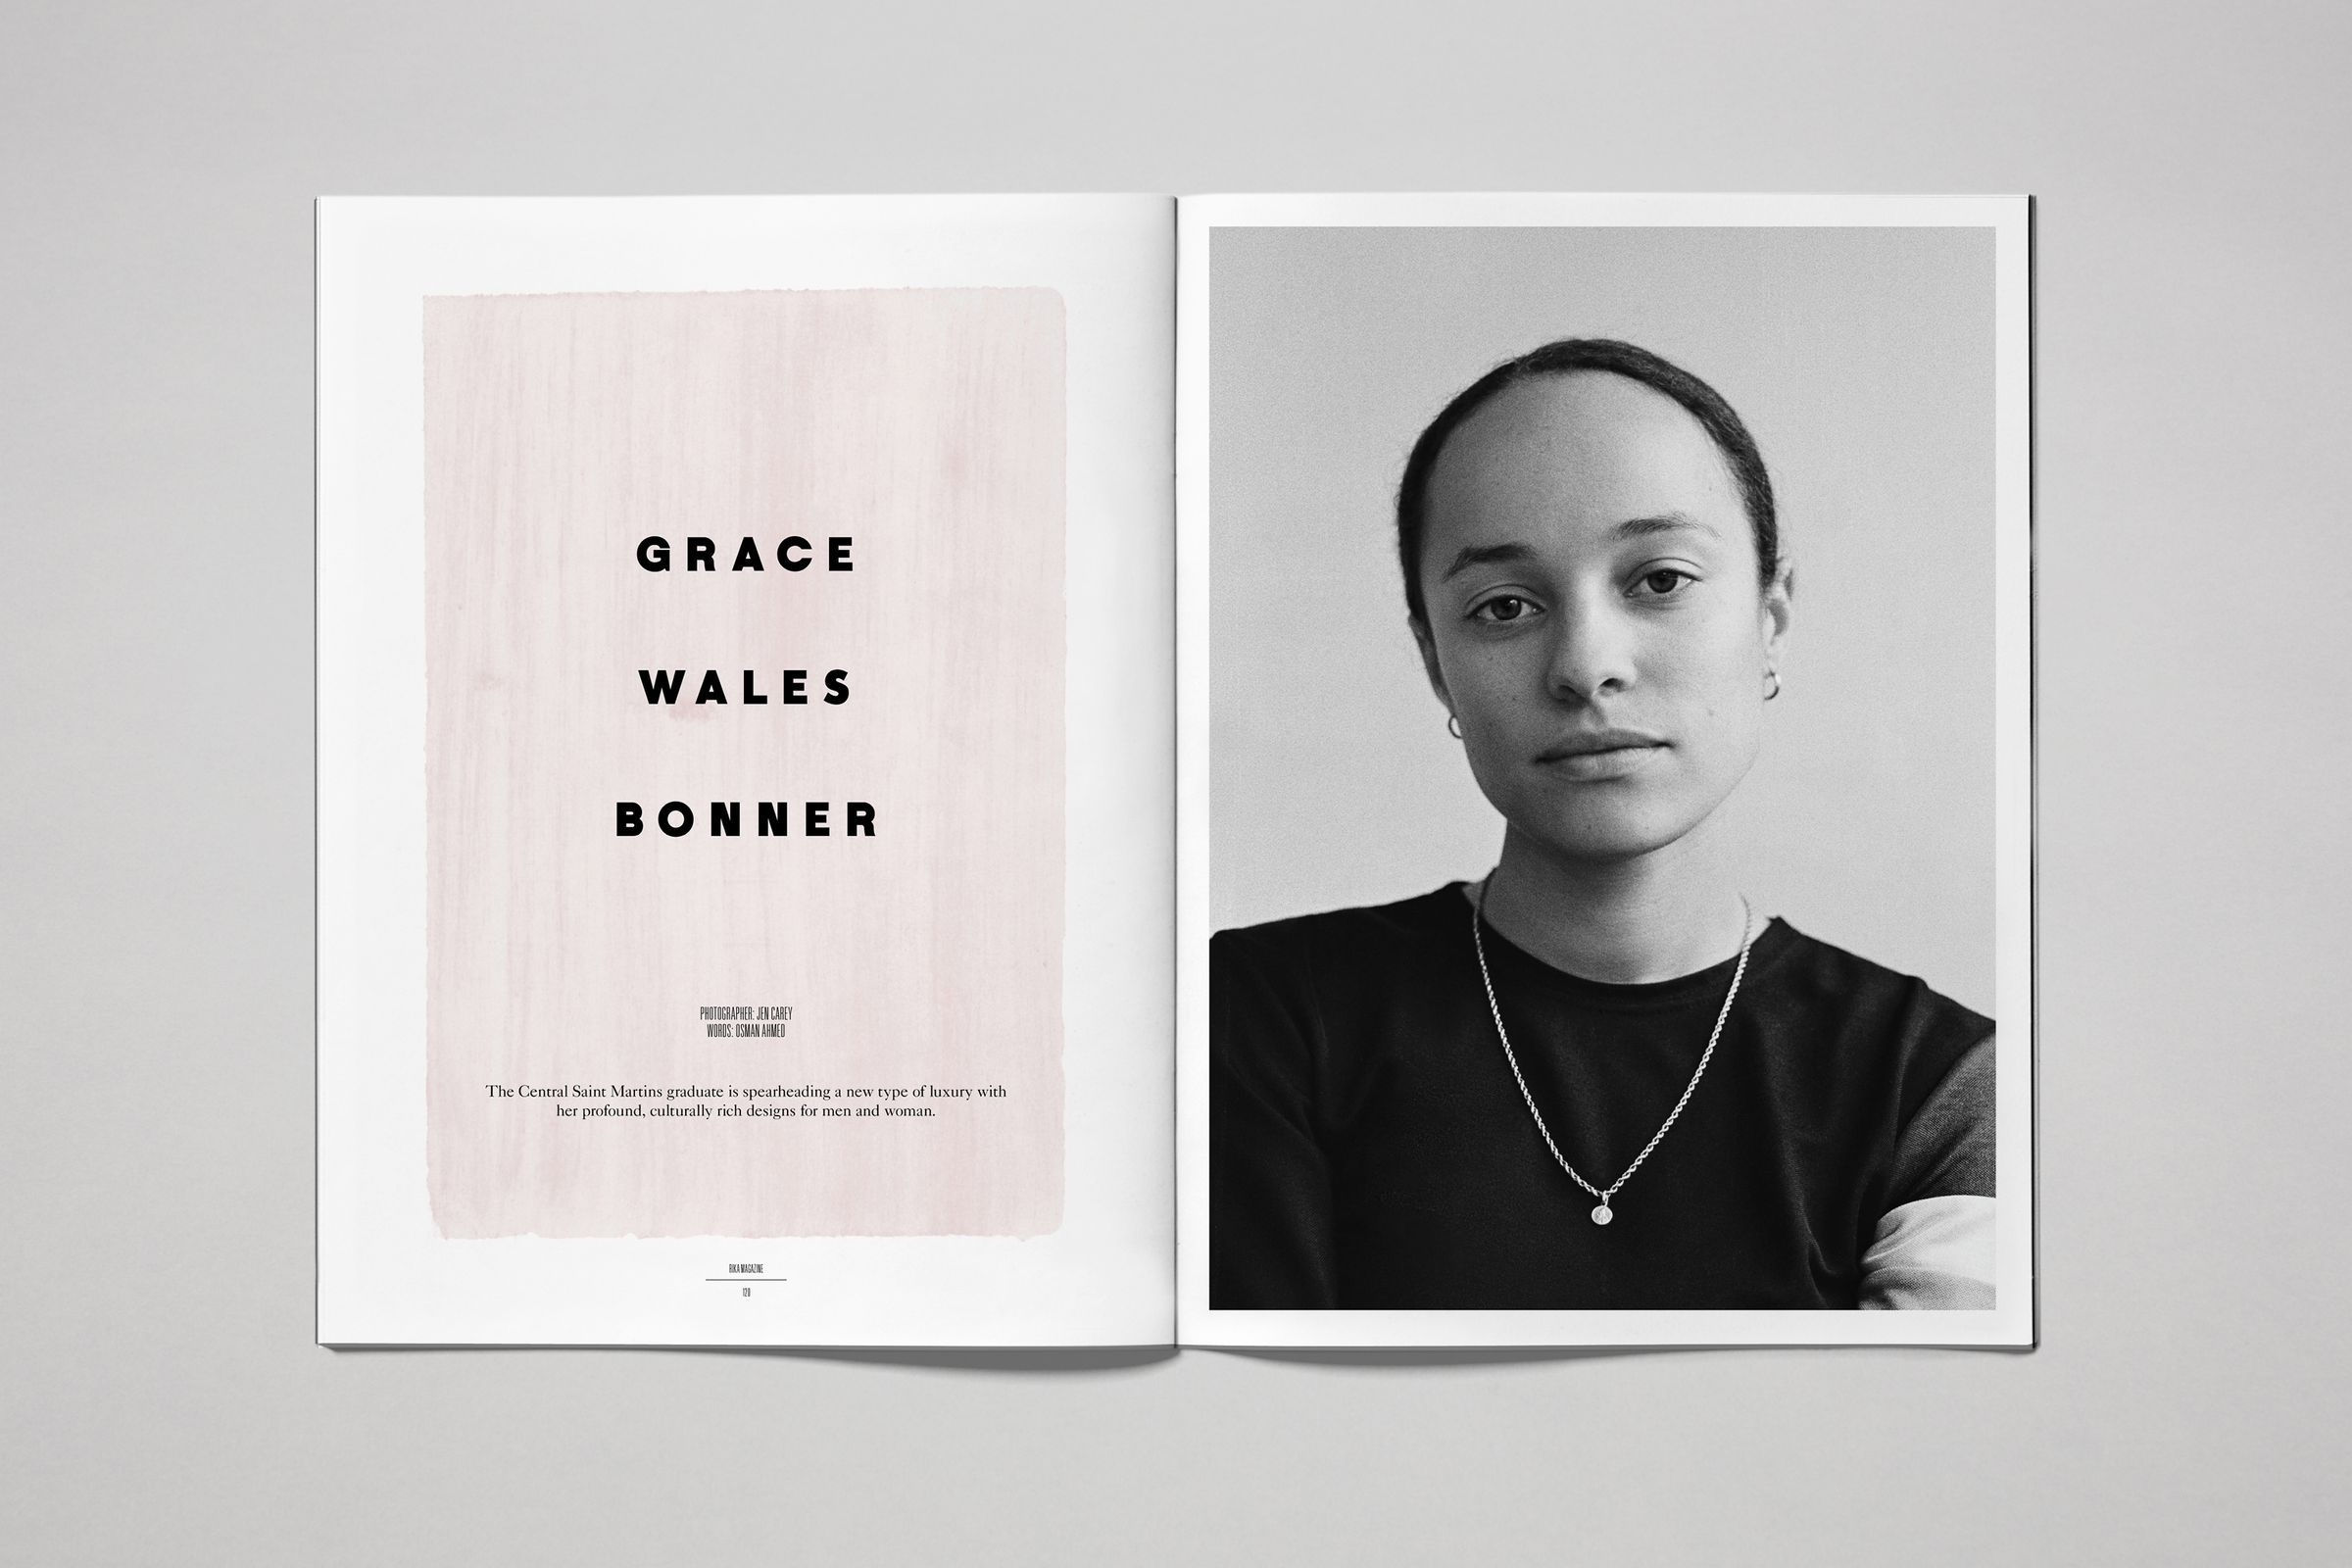 Rika Magazine issue no. 16 Grace Wales Bonner